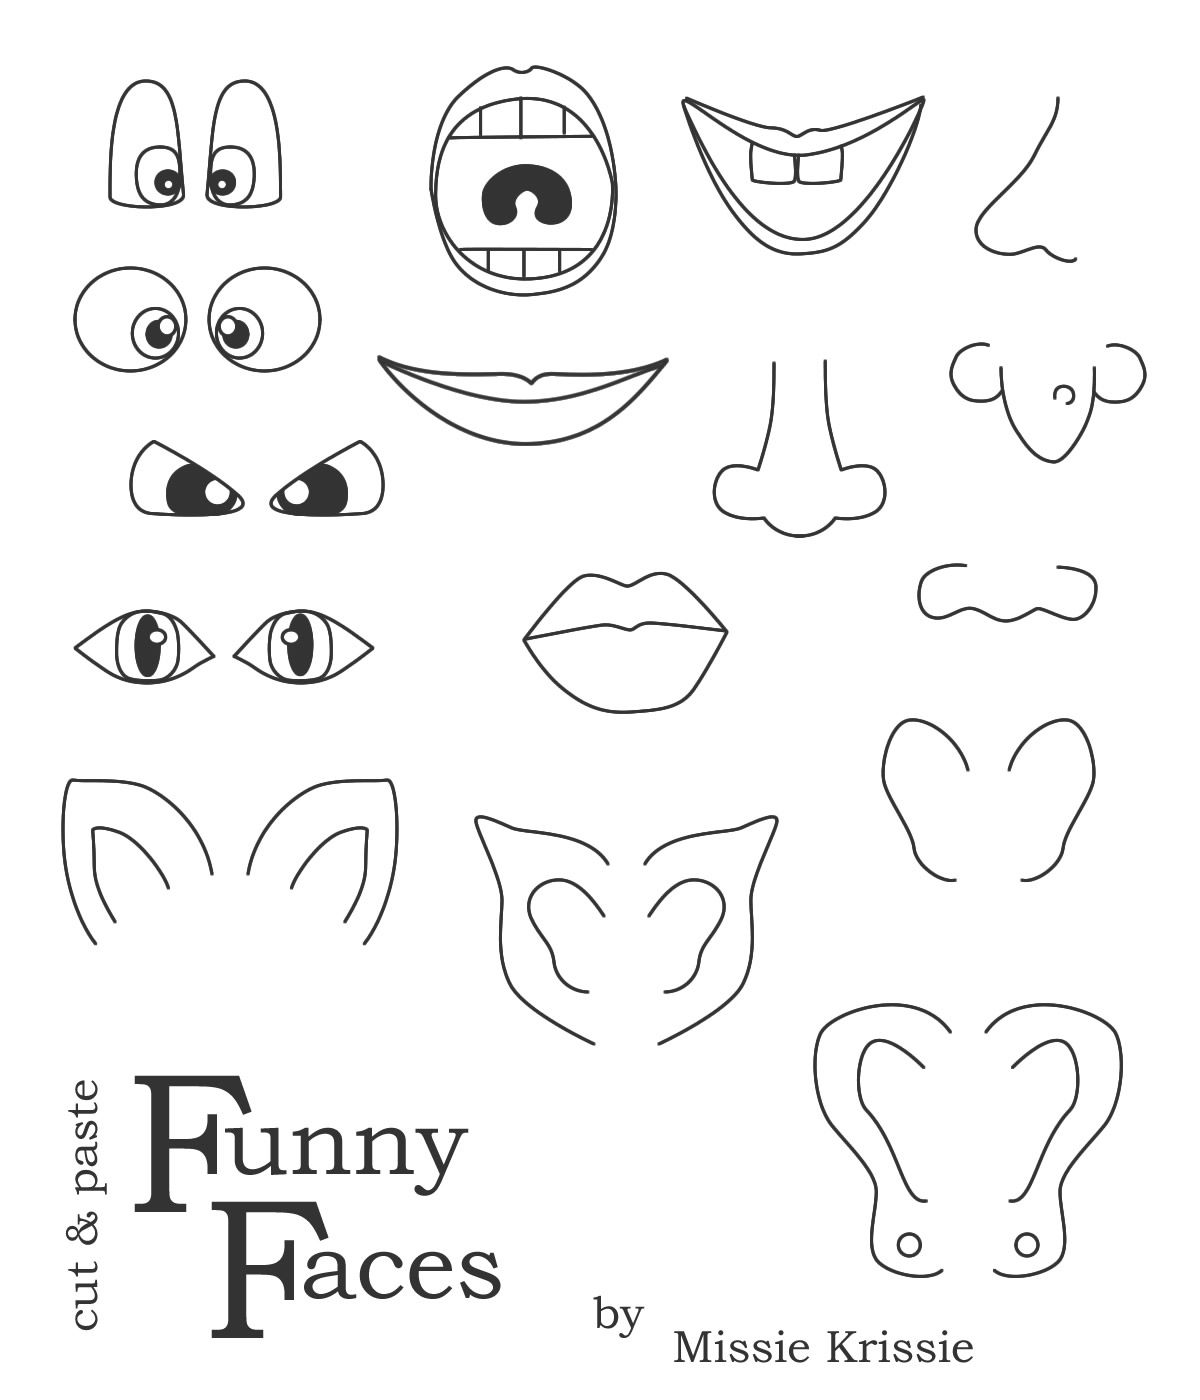 coloring printable emotion faces emotions coloring pages for toddlers top free printable coloring emotion faces printable